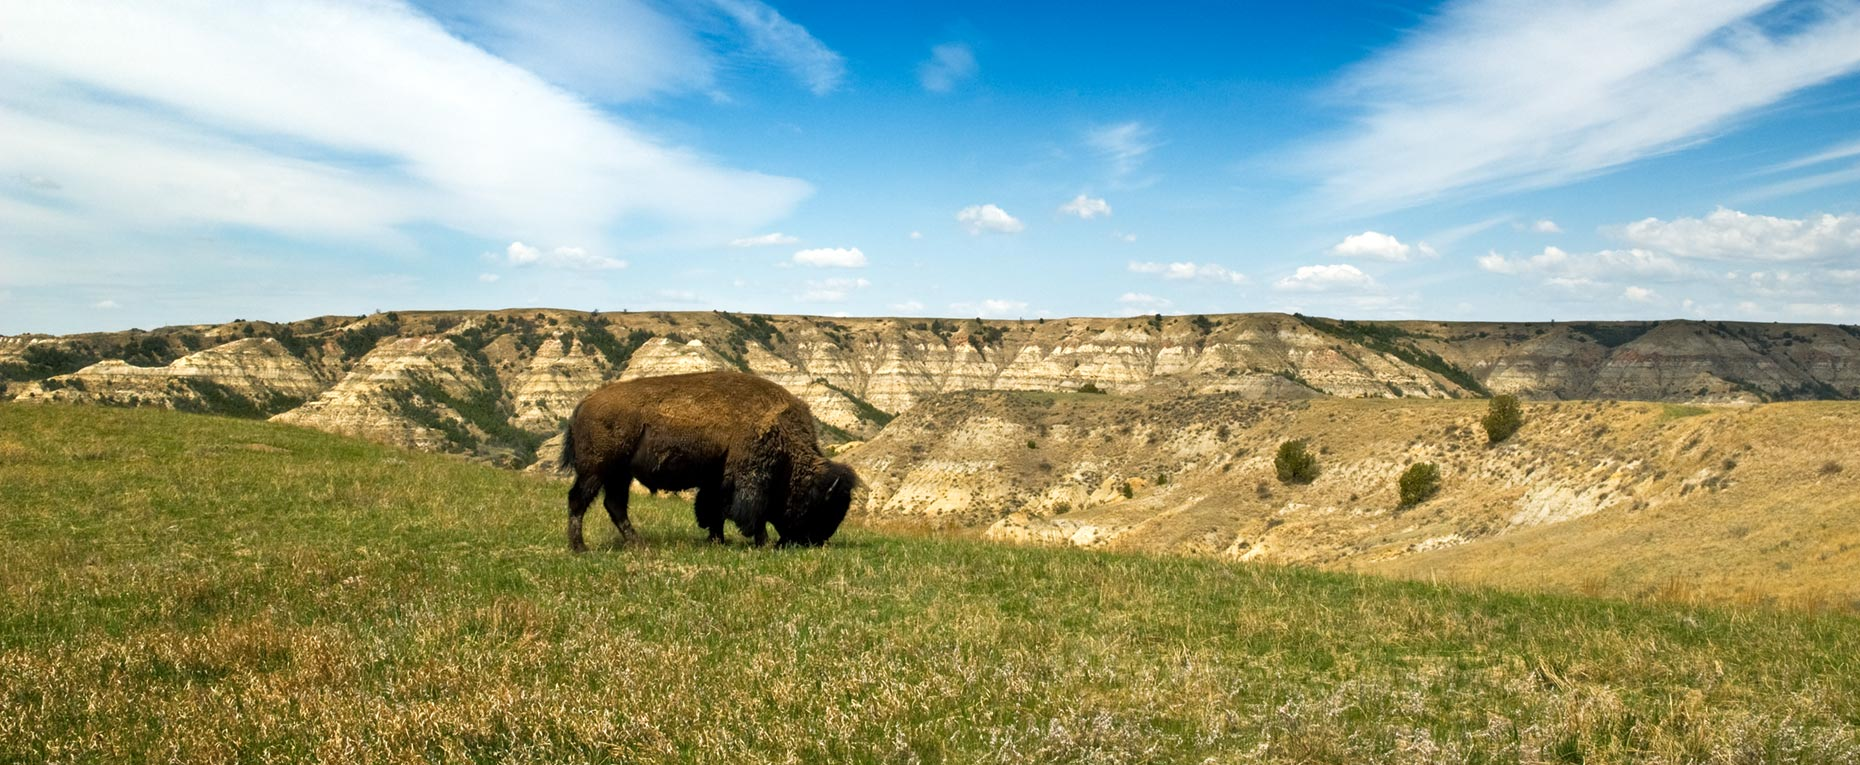 A photo of bison grazing in Theodore Roosevelt National Park, taken by North Dakota photographer Dan Koeck.